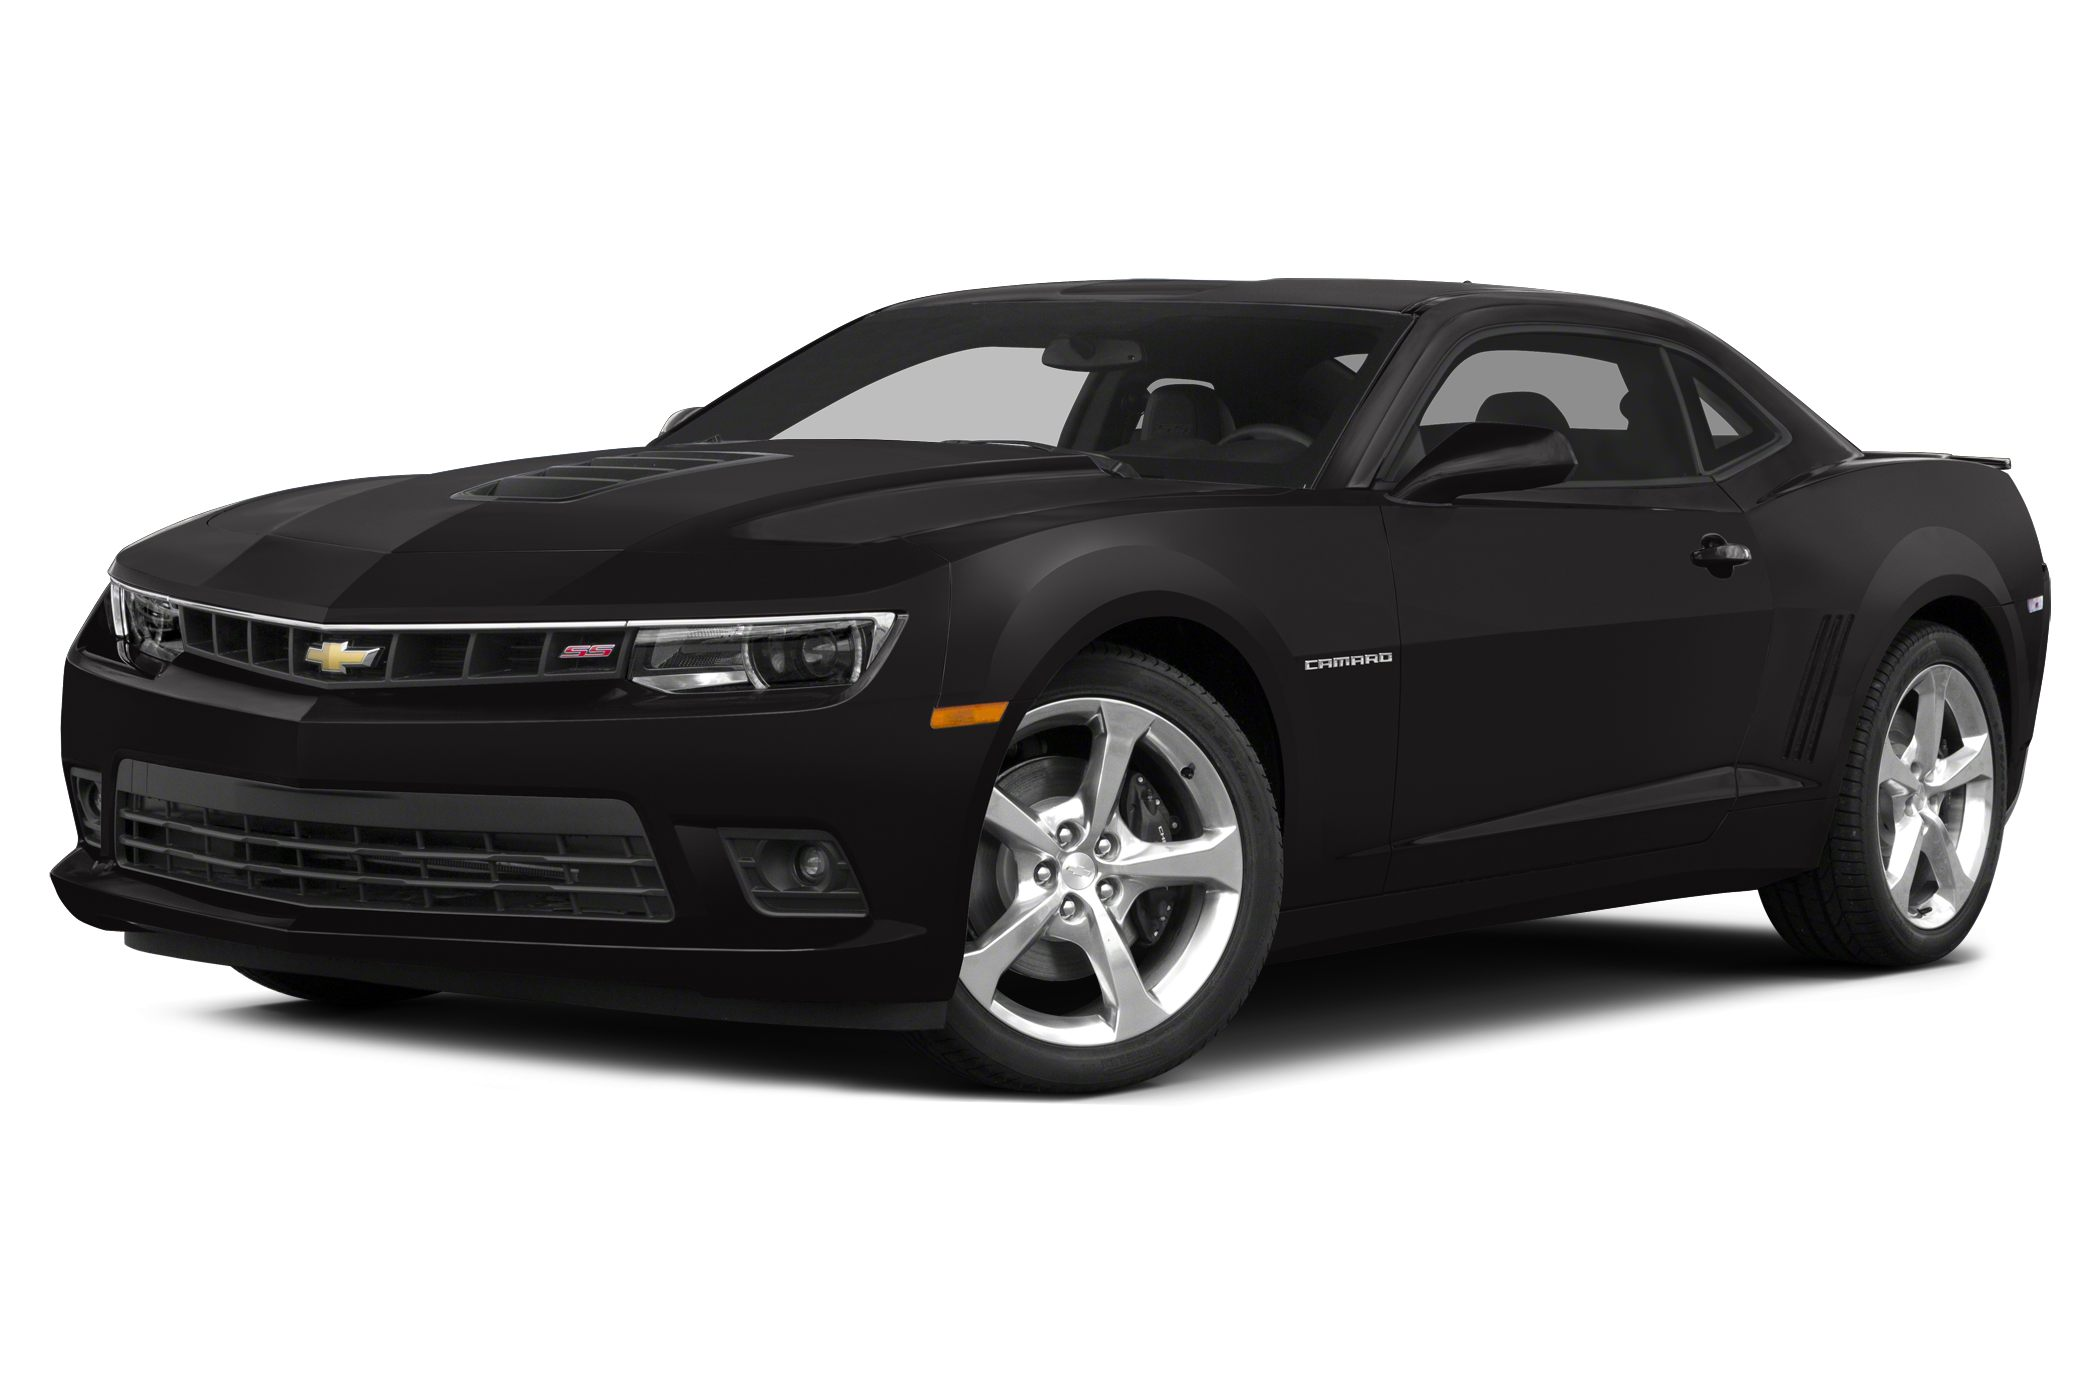 2014 Chevrolet Camaro SS w2SS A ONE OWNER LOCAL TRADE-IN WITH LOW MILES Buy with confidence - lo